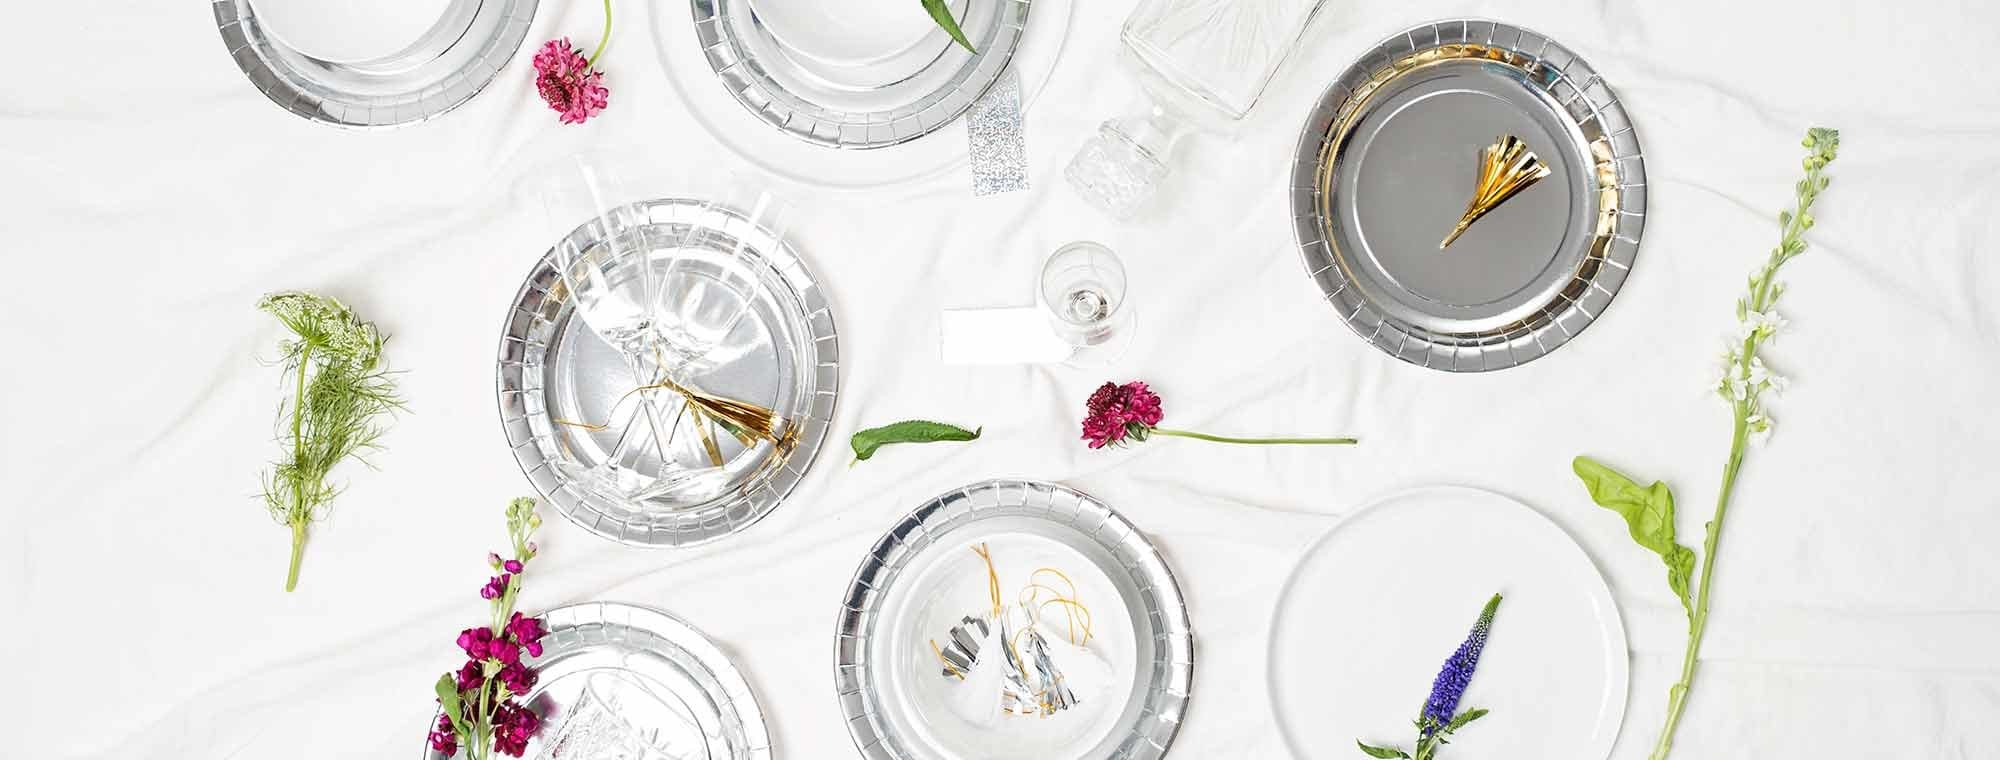 Disposable tableware  sc 1 st  Lagerhaus & Disposable tableware | Home Accessories Online | Lagerhaus.se